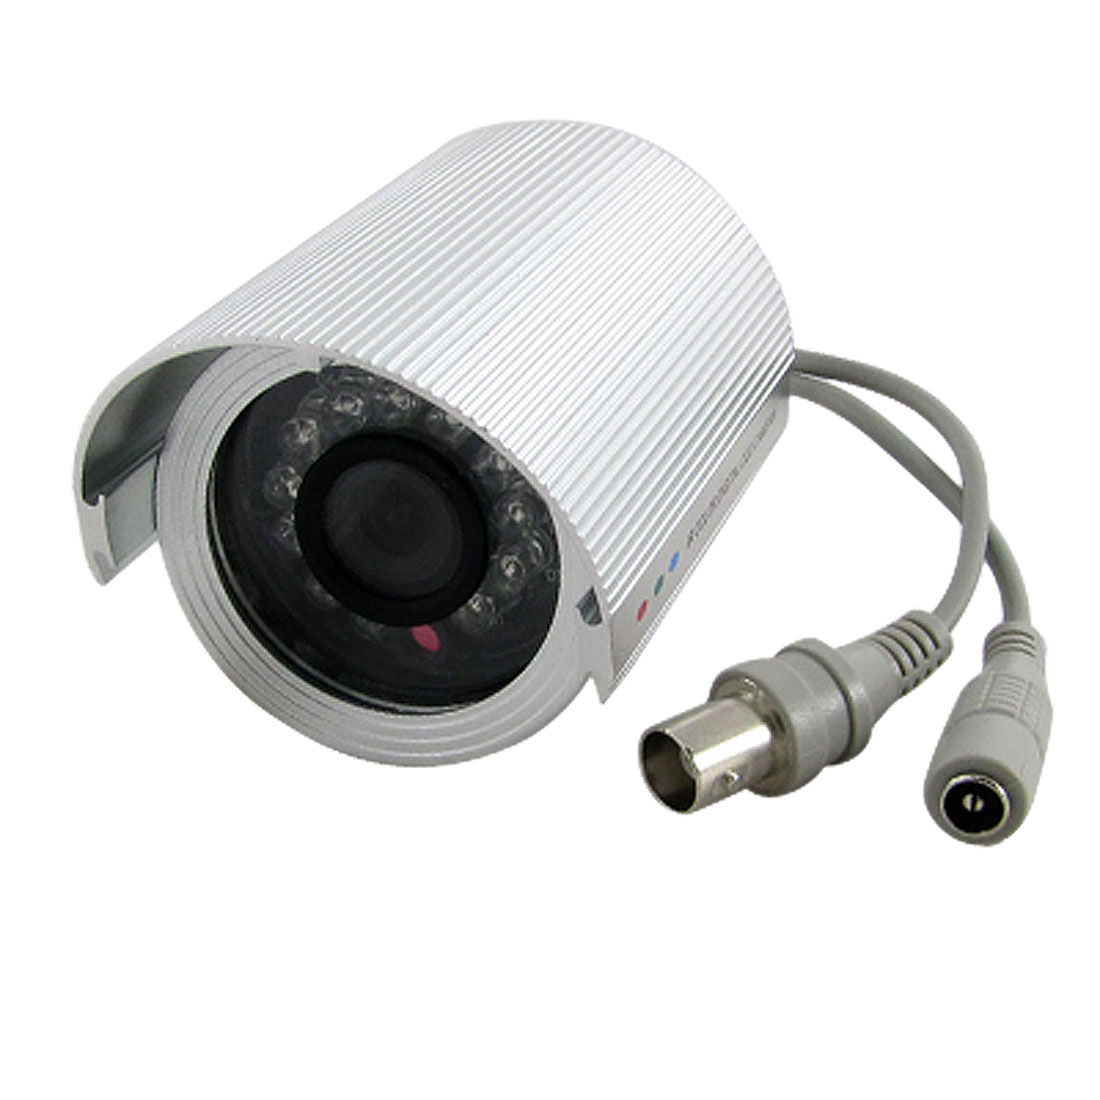 3.6mm Lens 1/3 Inch CCD 12 LEDs PAL BNC Connector CCTV Infared Camera